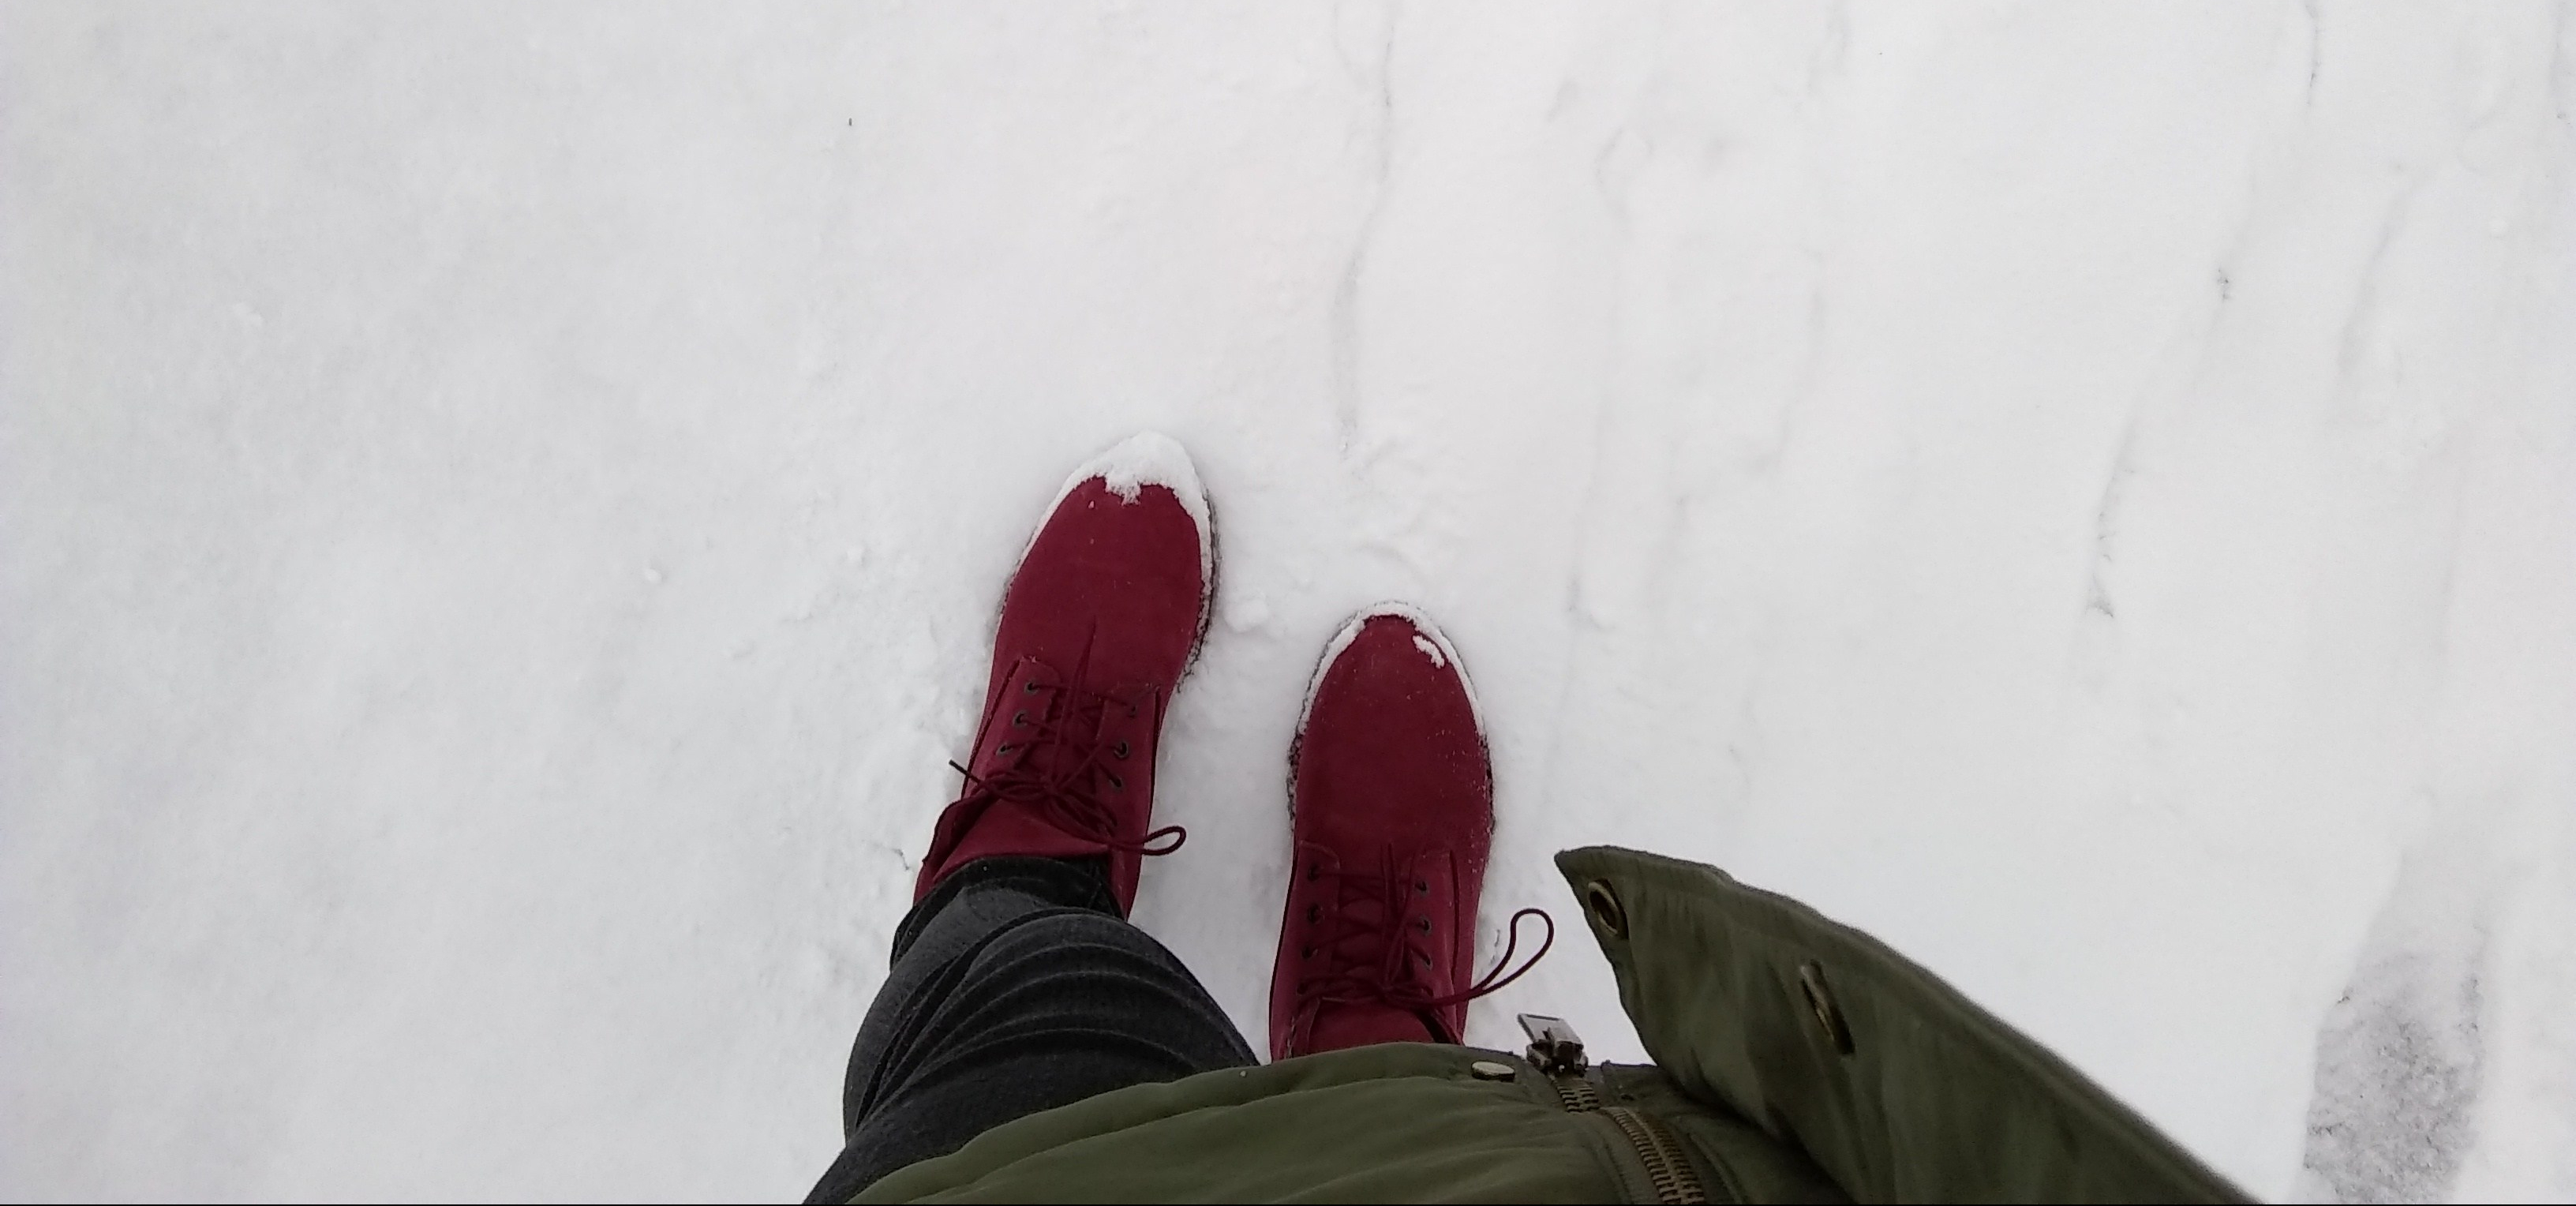 Walking on snow with boots.